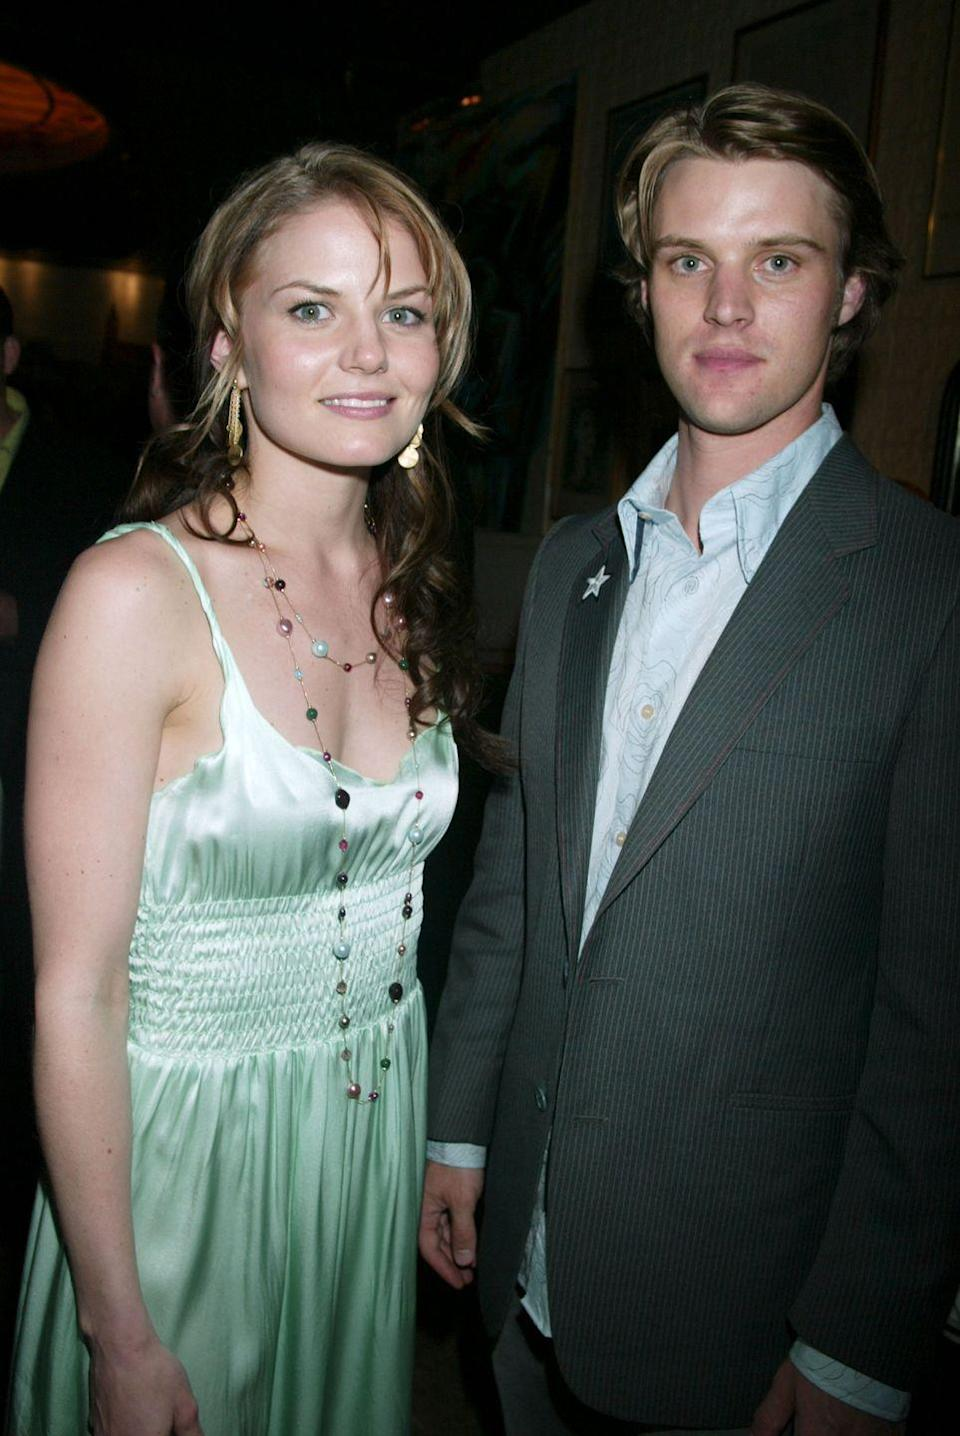 <p>The <em>House </em>co-stars took their on-screen romance off-screen and eventually got engaged. While their relationship IRL ended in 2007, the co-stars had to remain in love fictionally, as their characters eventually got married in the season five finale. </p>